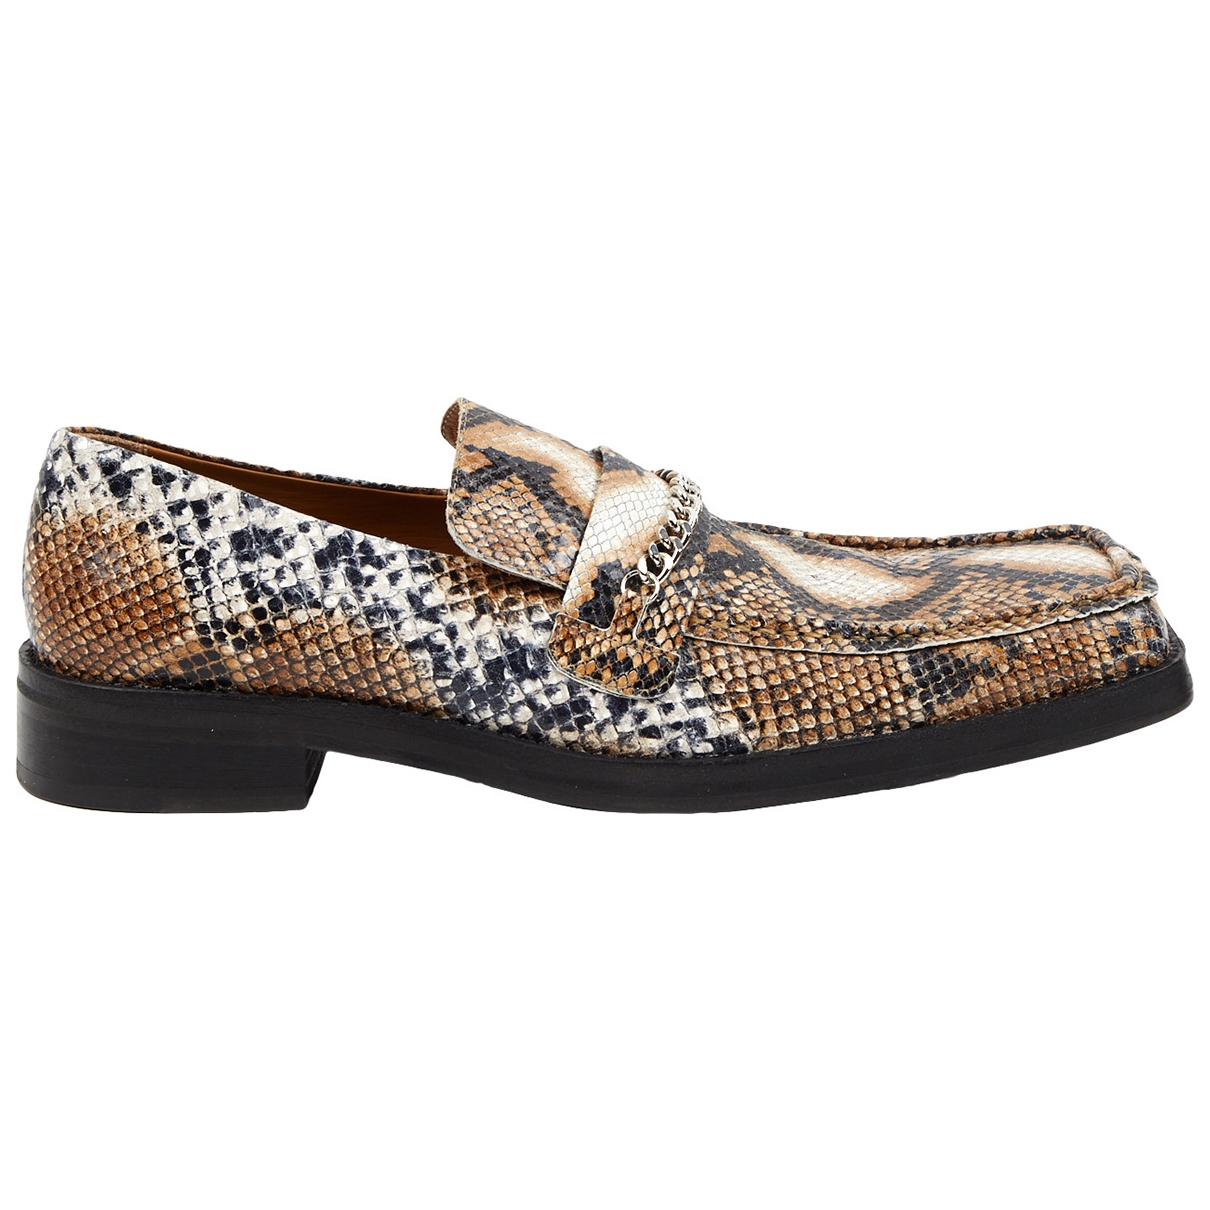 Martine Rose \N Brown Leather Flats for Women 39 EU